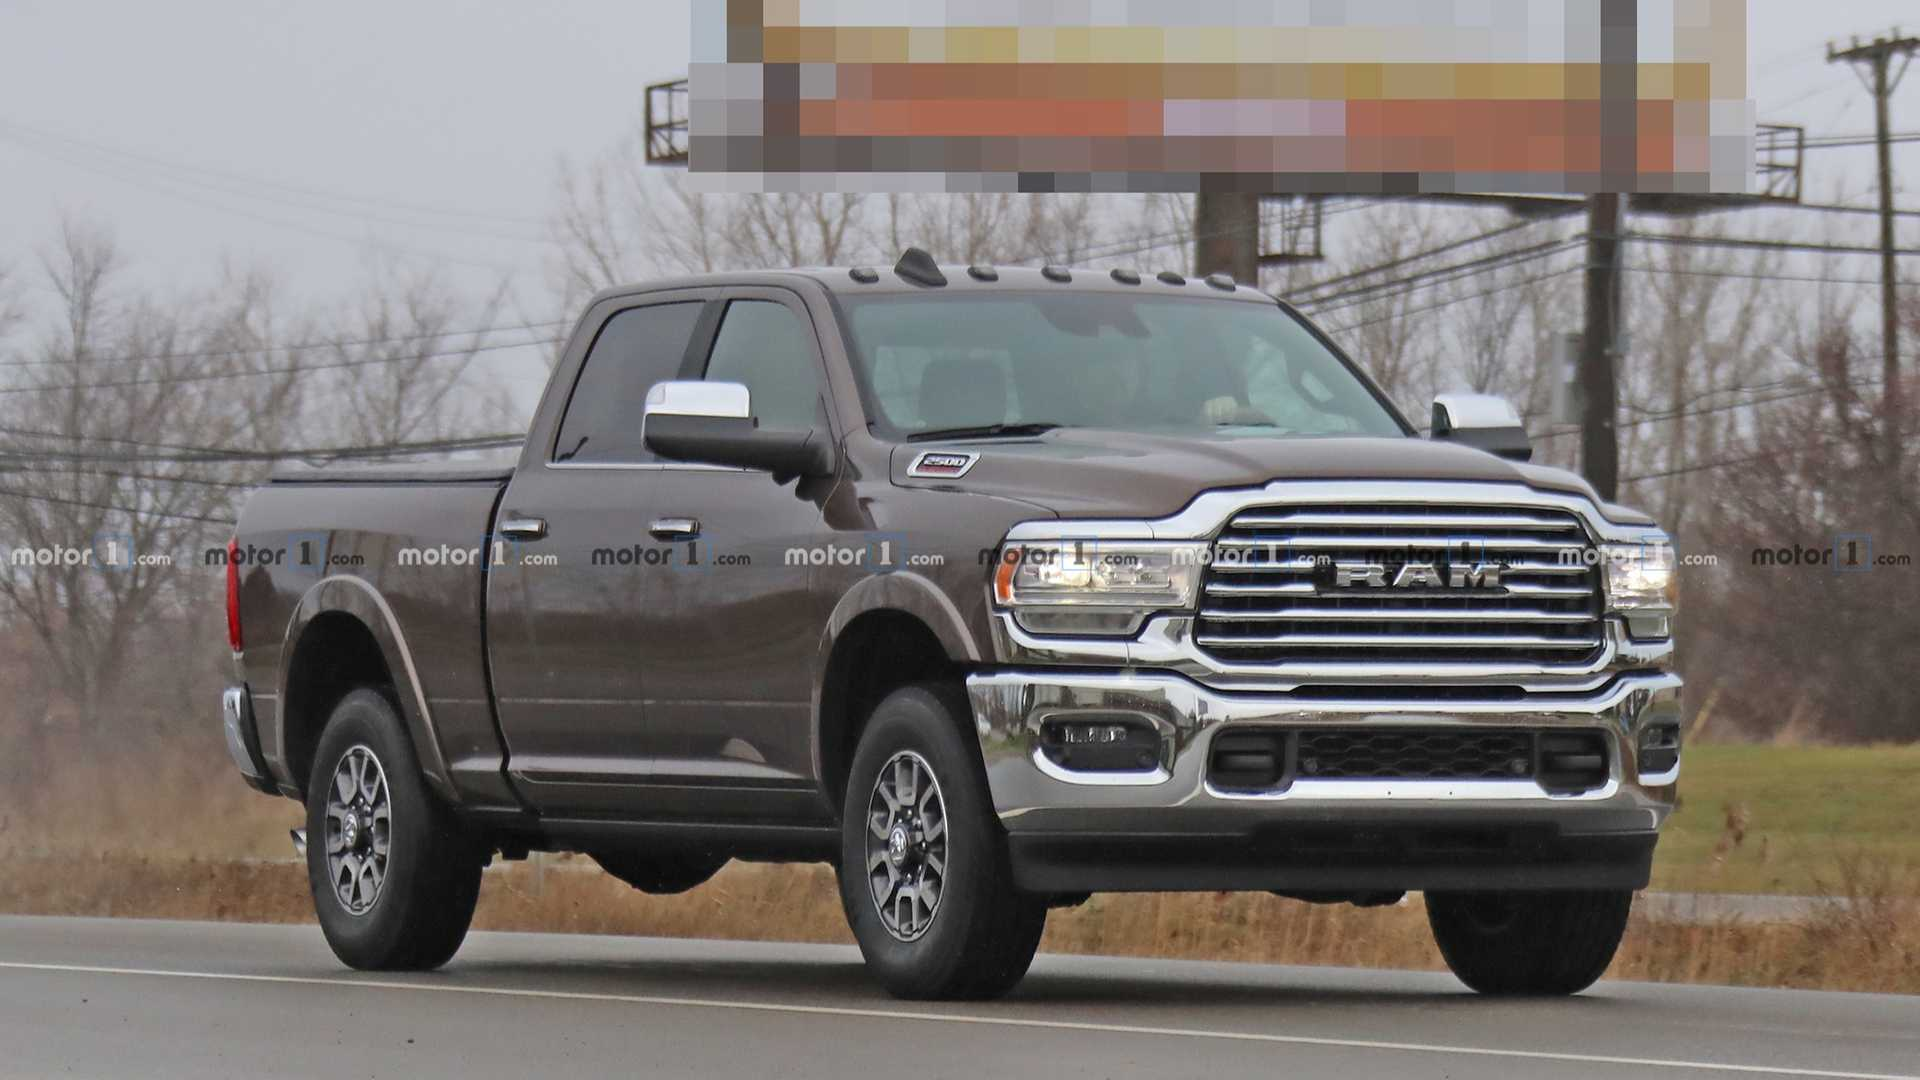 39 The Best 2020 Dodge Ram 3500 Redesign And Concept